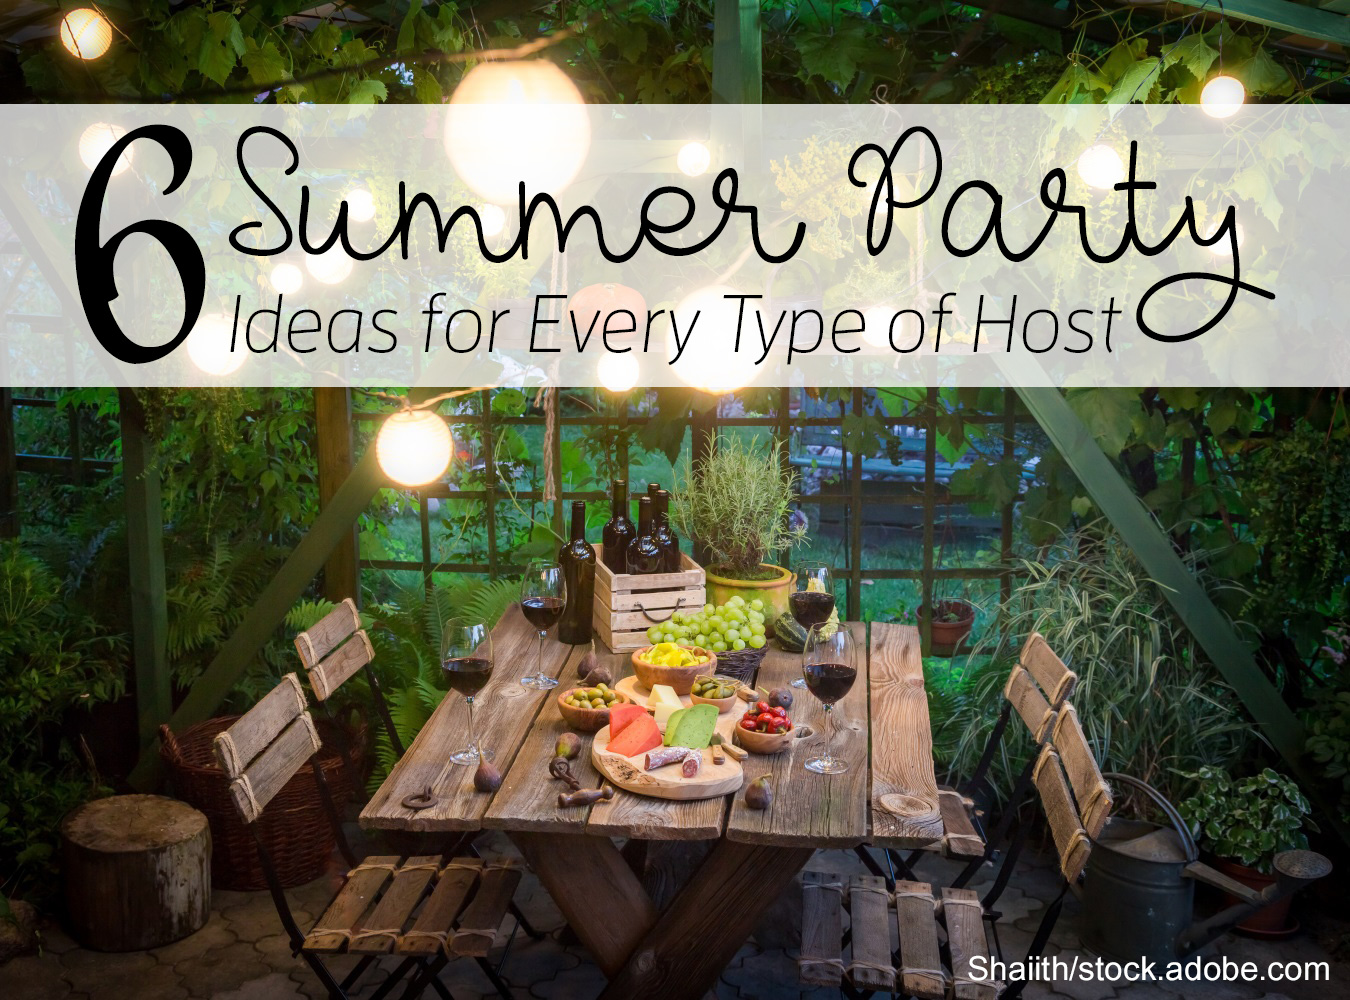 Host a Great Garden Party